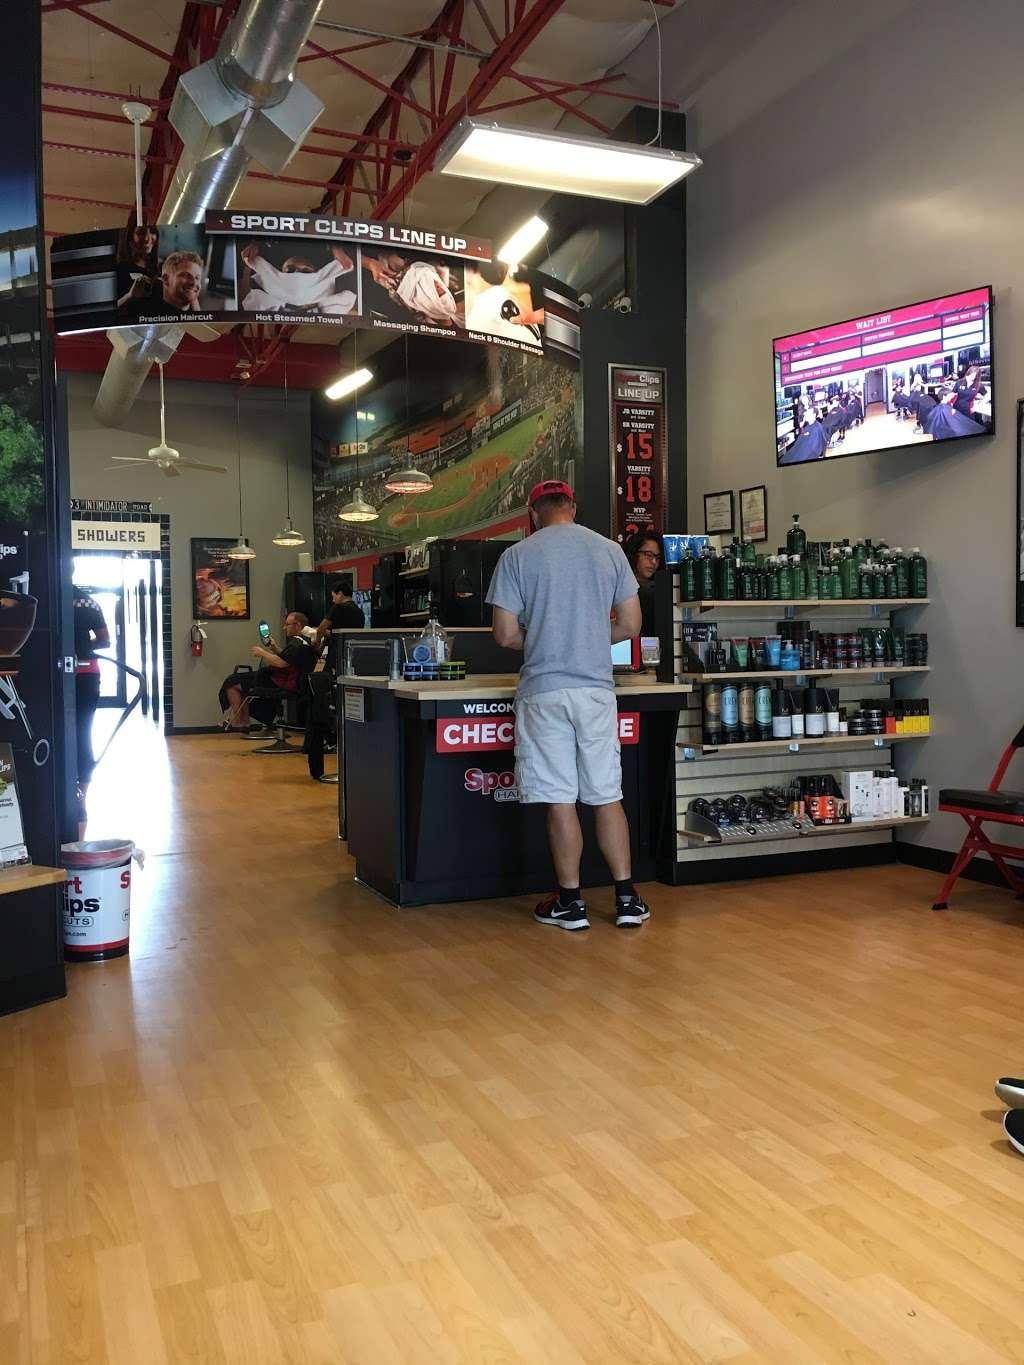 Sport Clips Haircuts of Coppell - hair care  | Photo 10 of 10 | Address: 240 N Denton Tap Rd #430, Coppell, TX 75019, USA | Phone: (972) 393-9490